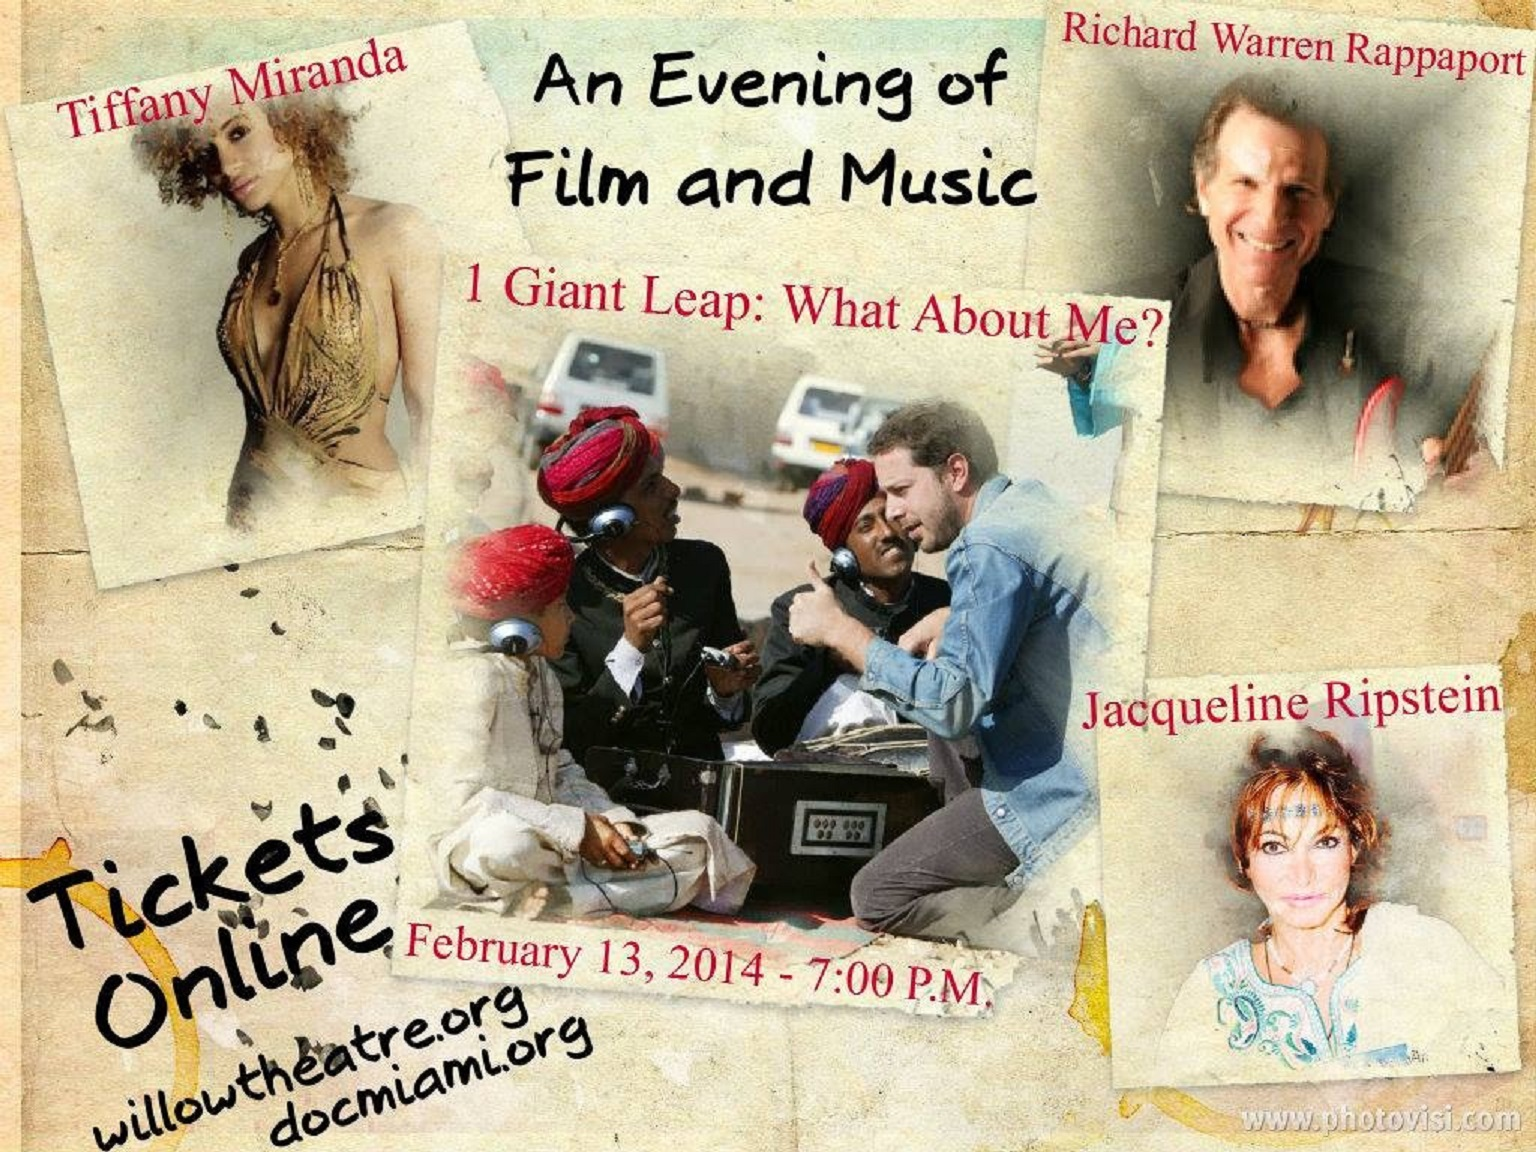 An Evening of Film & Music..Florida Film Festival JR : Intro Film Festival & Book signing